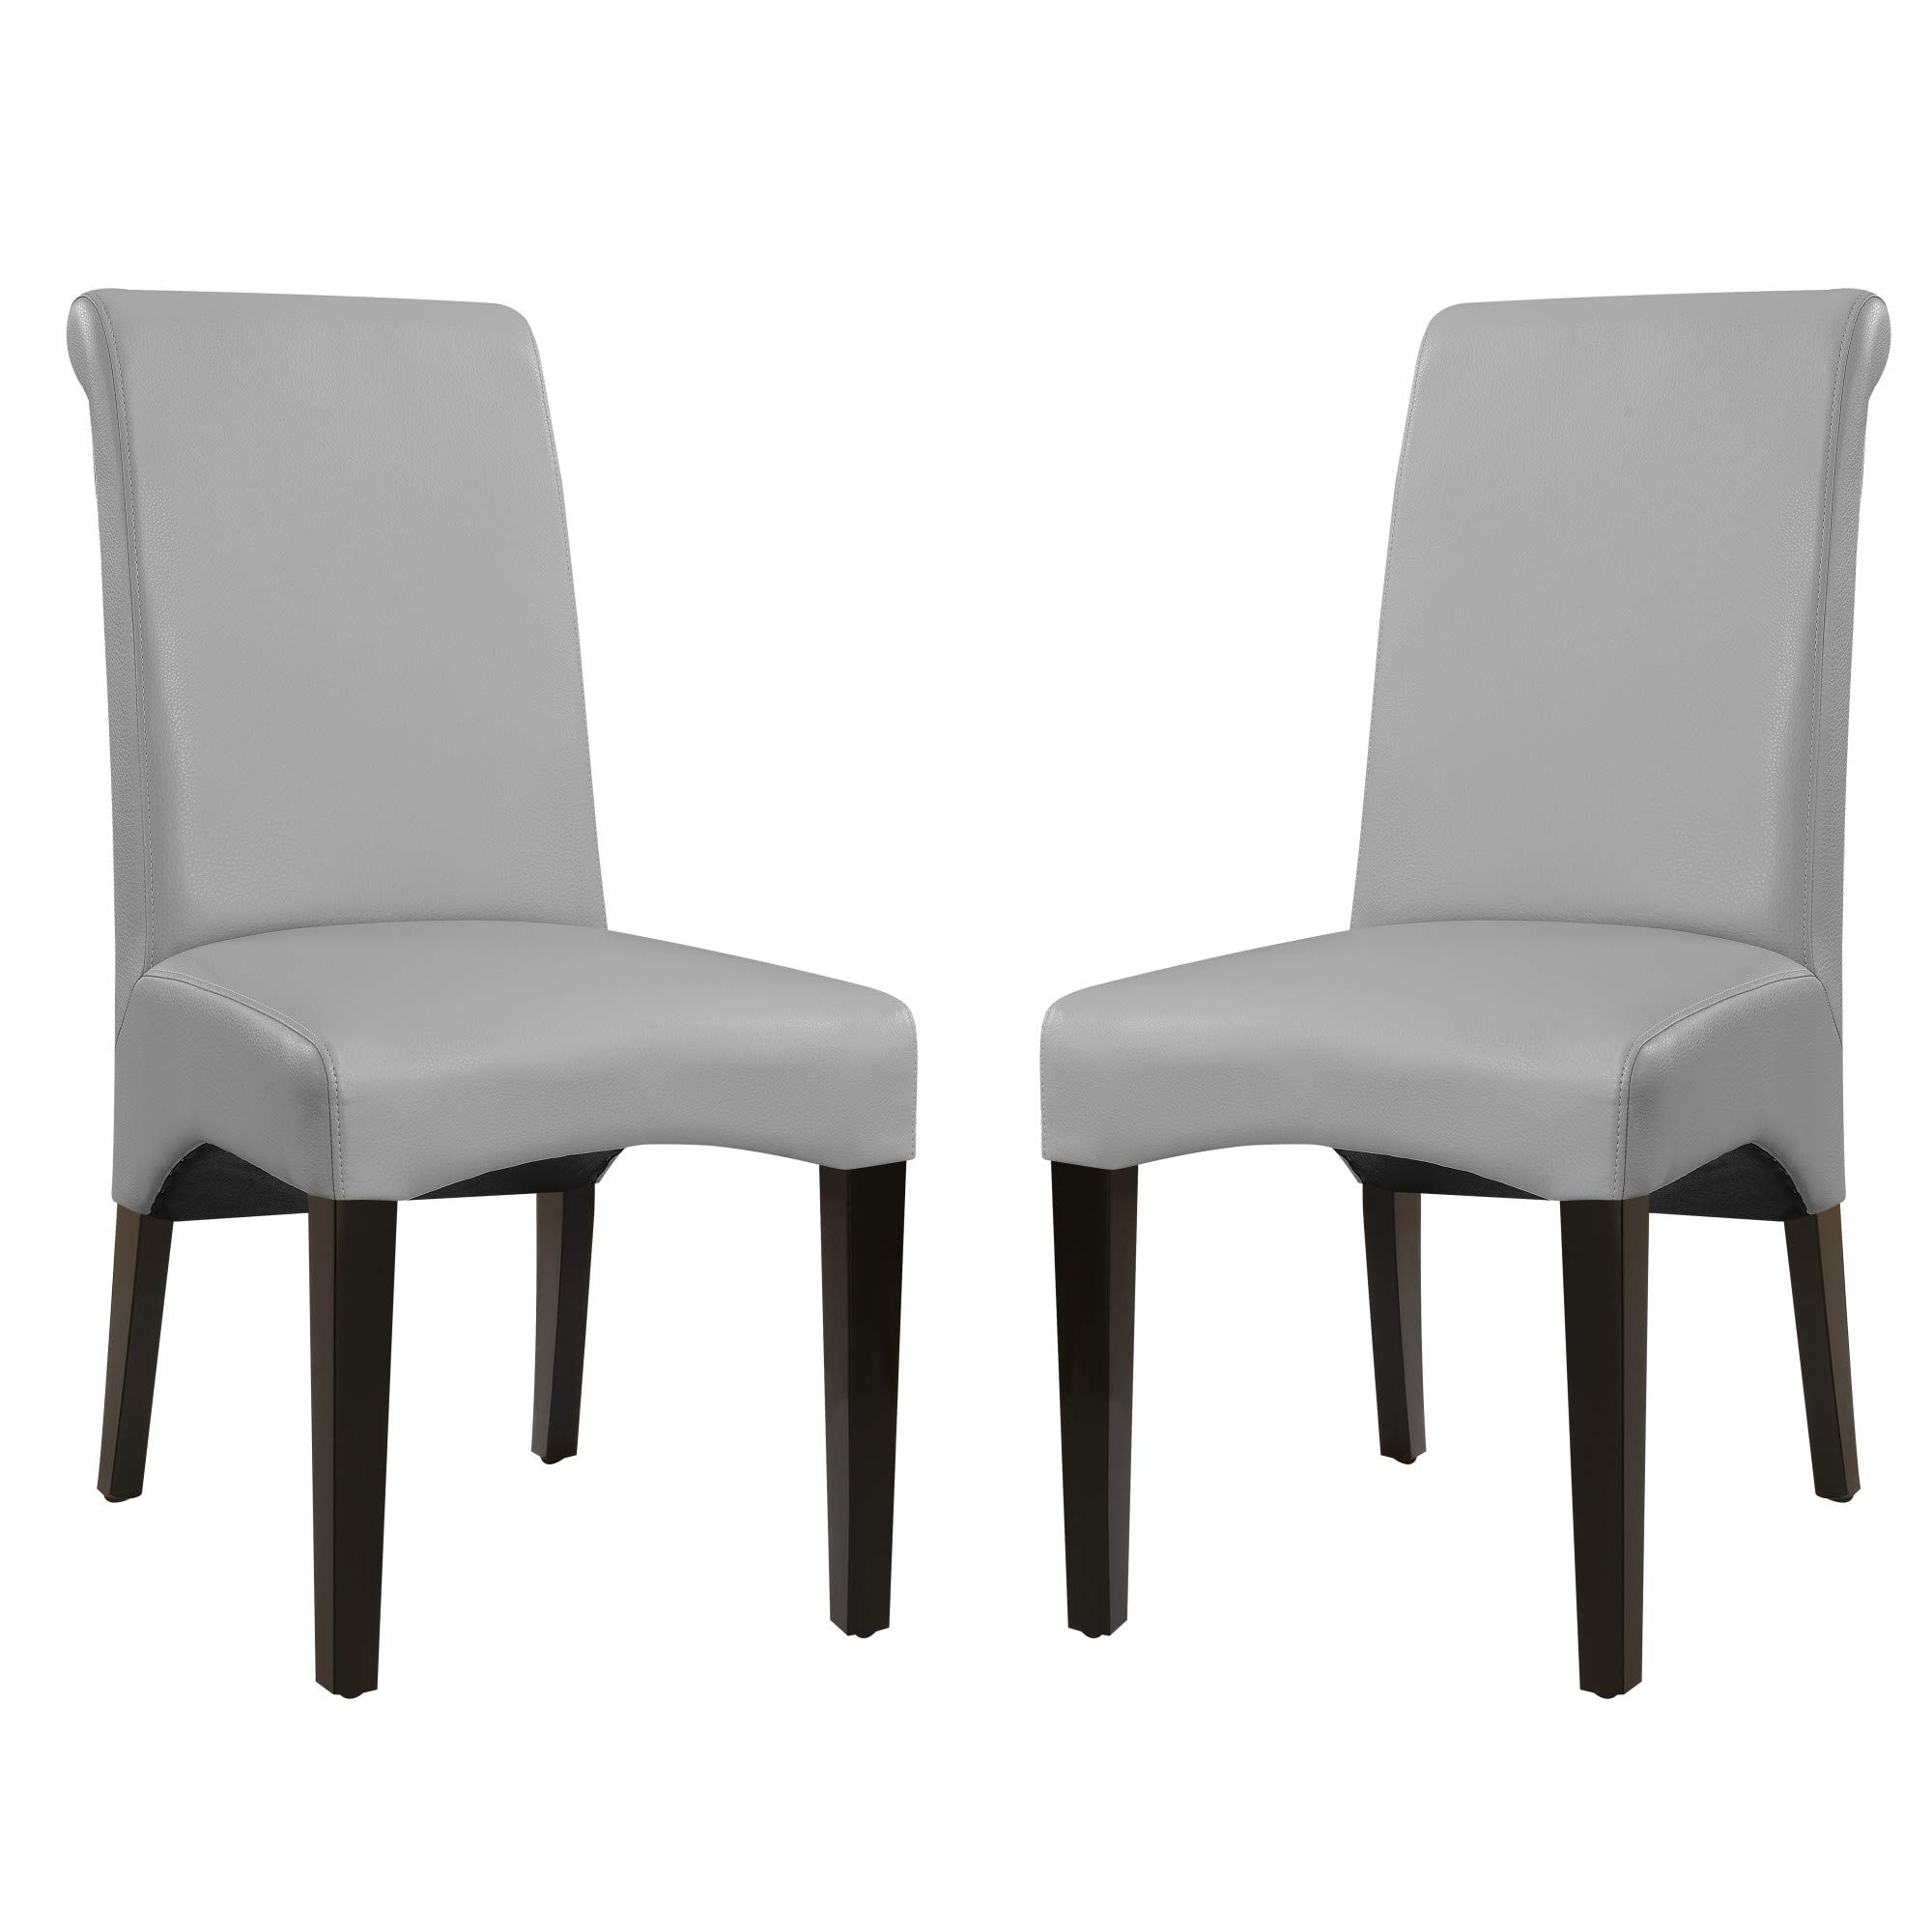 Livingston II Upholstered Dining Chair in Soft Gray with Faux Leather Upholstery And Curved Back, Set of Two, by Artum Hill by Artum Hill (Image #1)